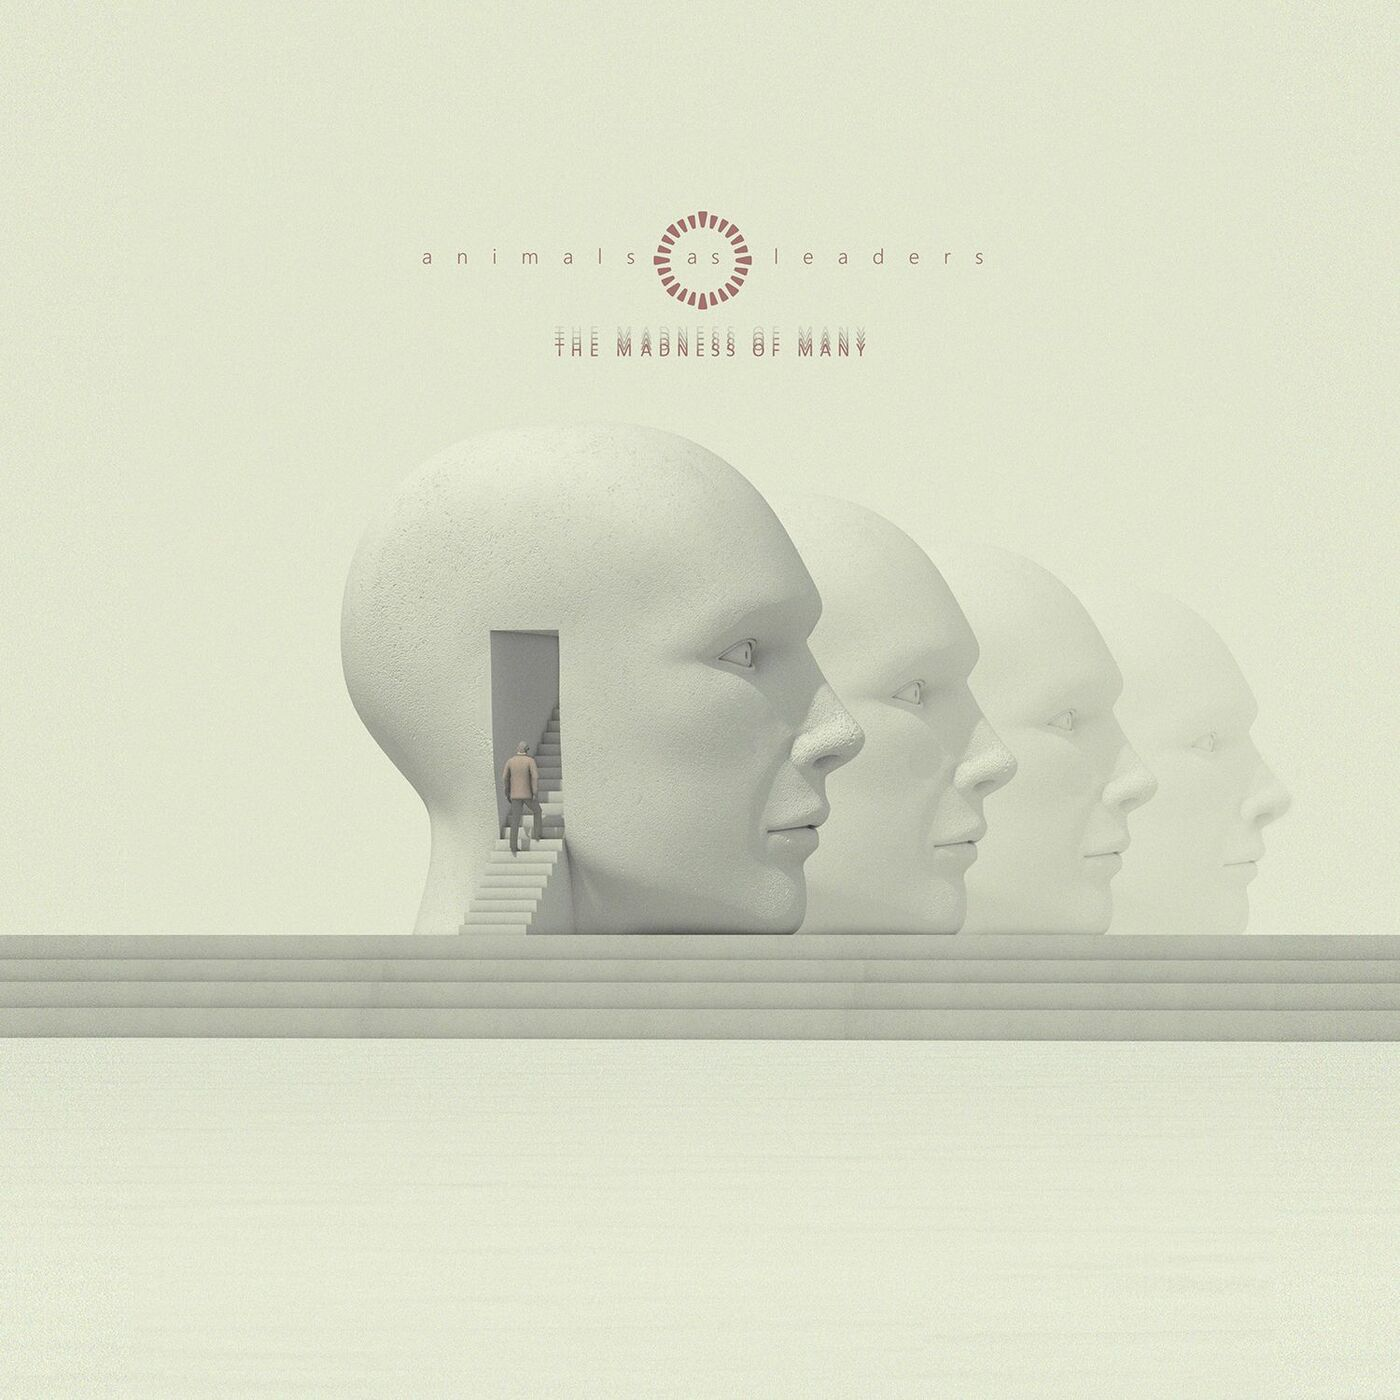 Animals As Leaders - The Brain Dance [single] (2016)